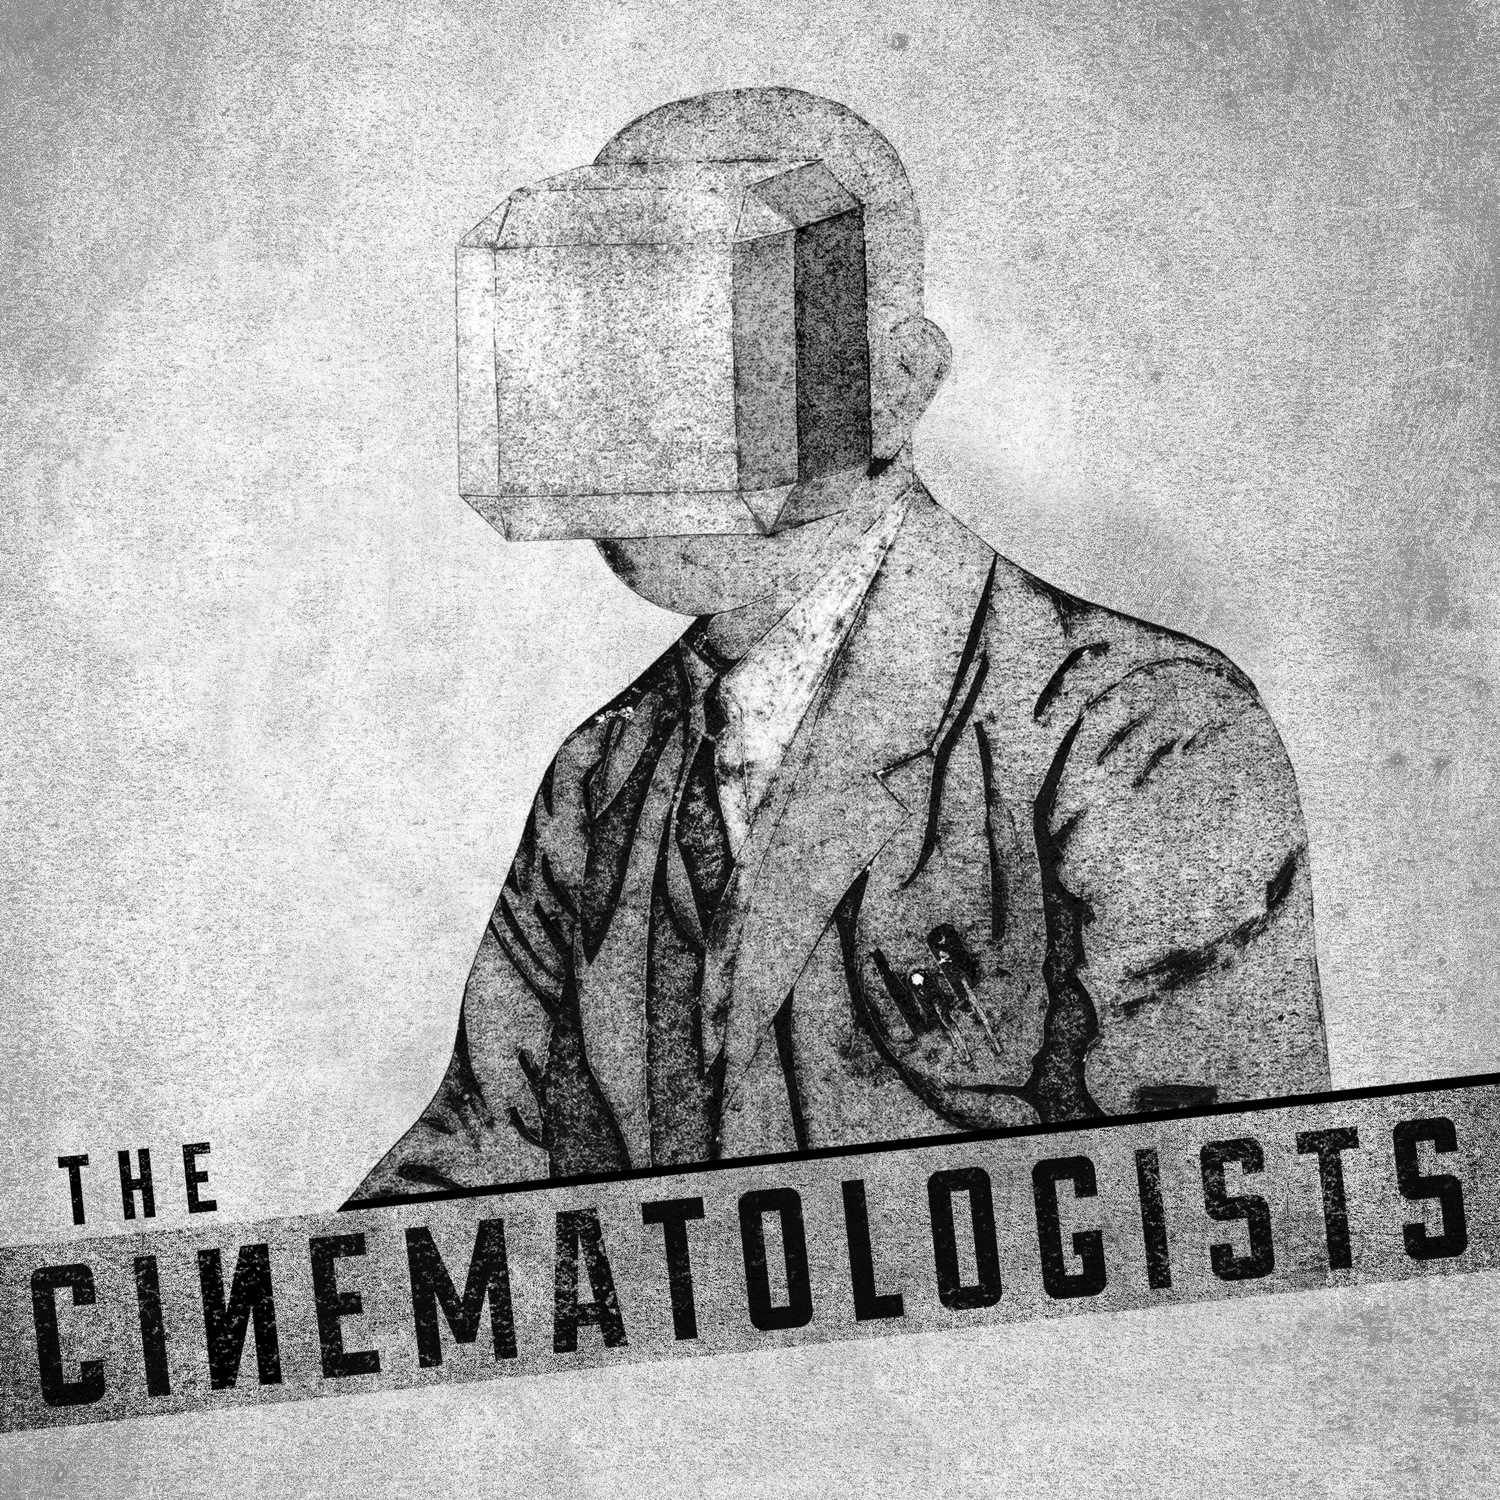 The Cinematologists